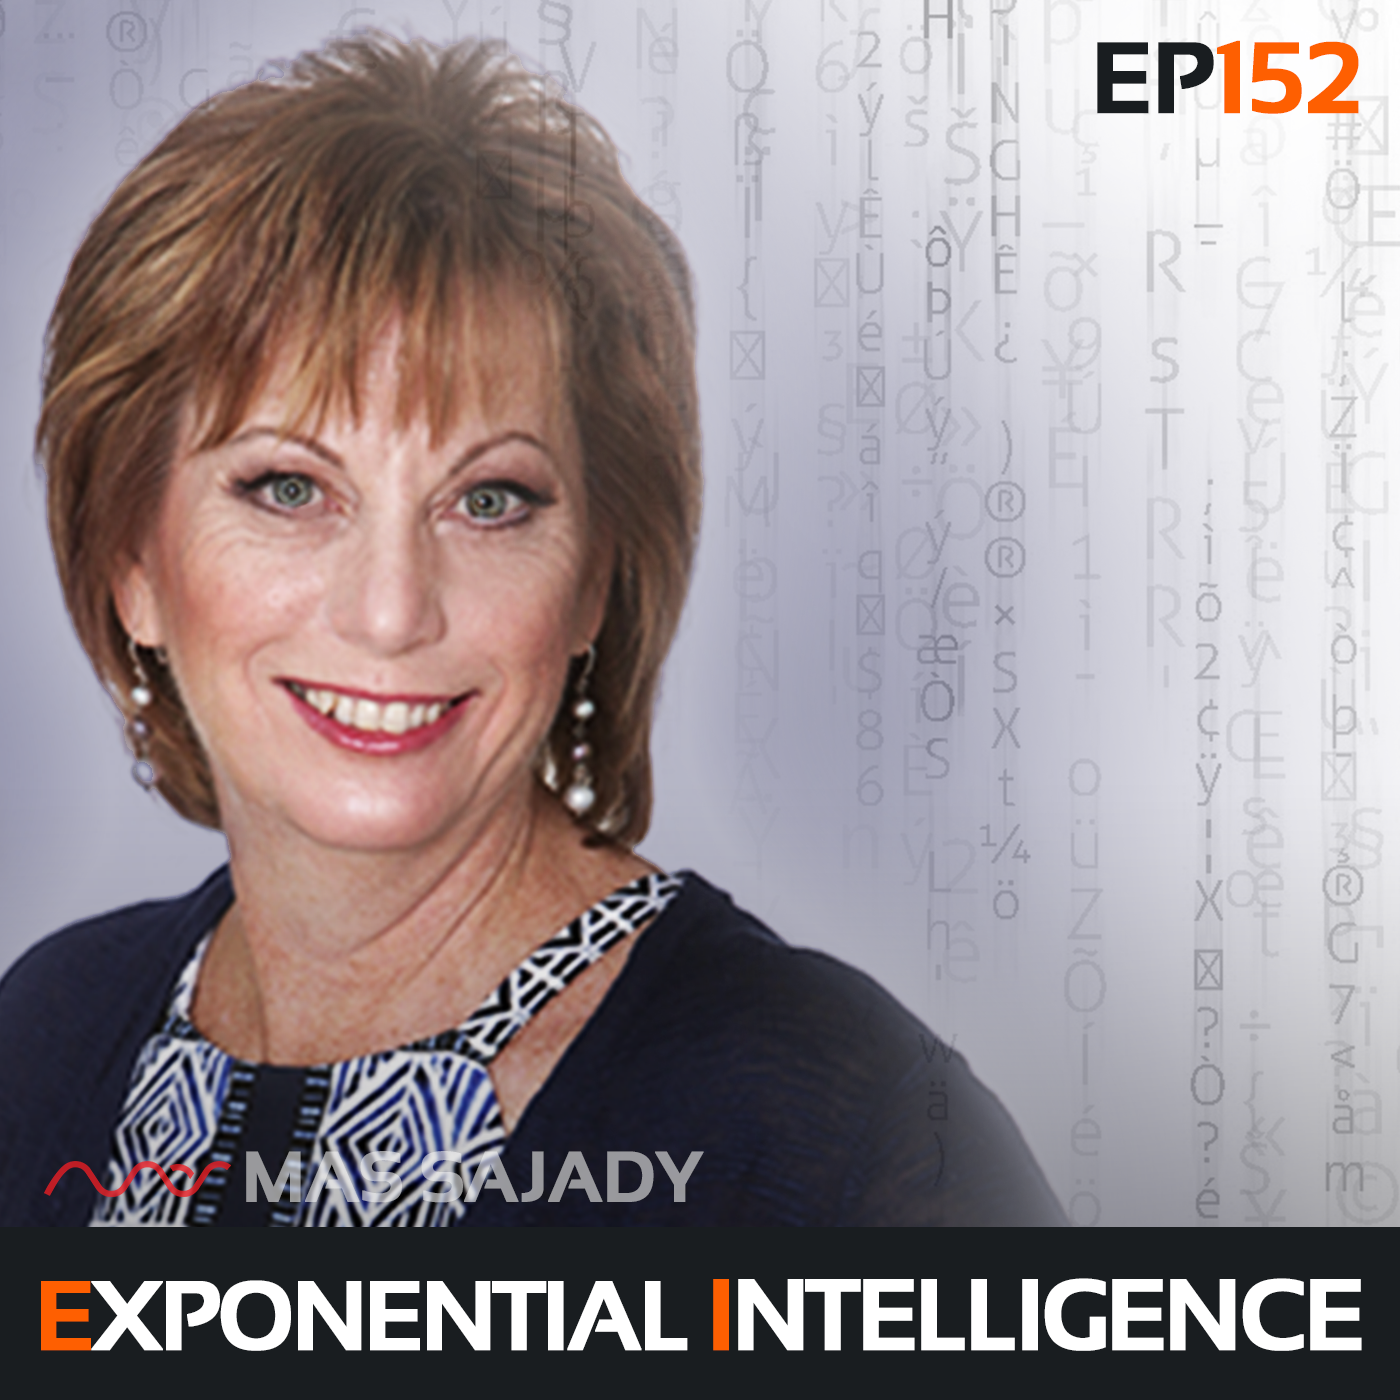 mas-sajady-exponential-intelligence-podcast-152-15-myths-success-with-dawn-moore-part-2.png